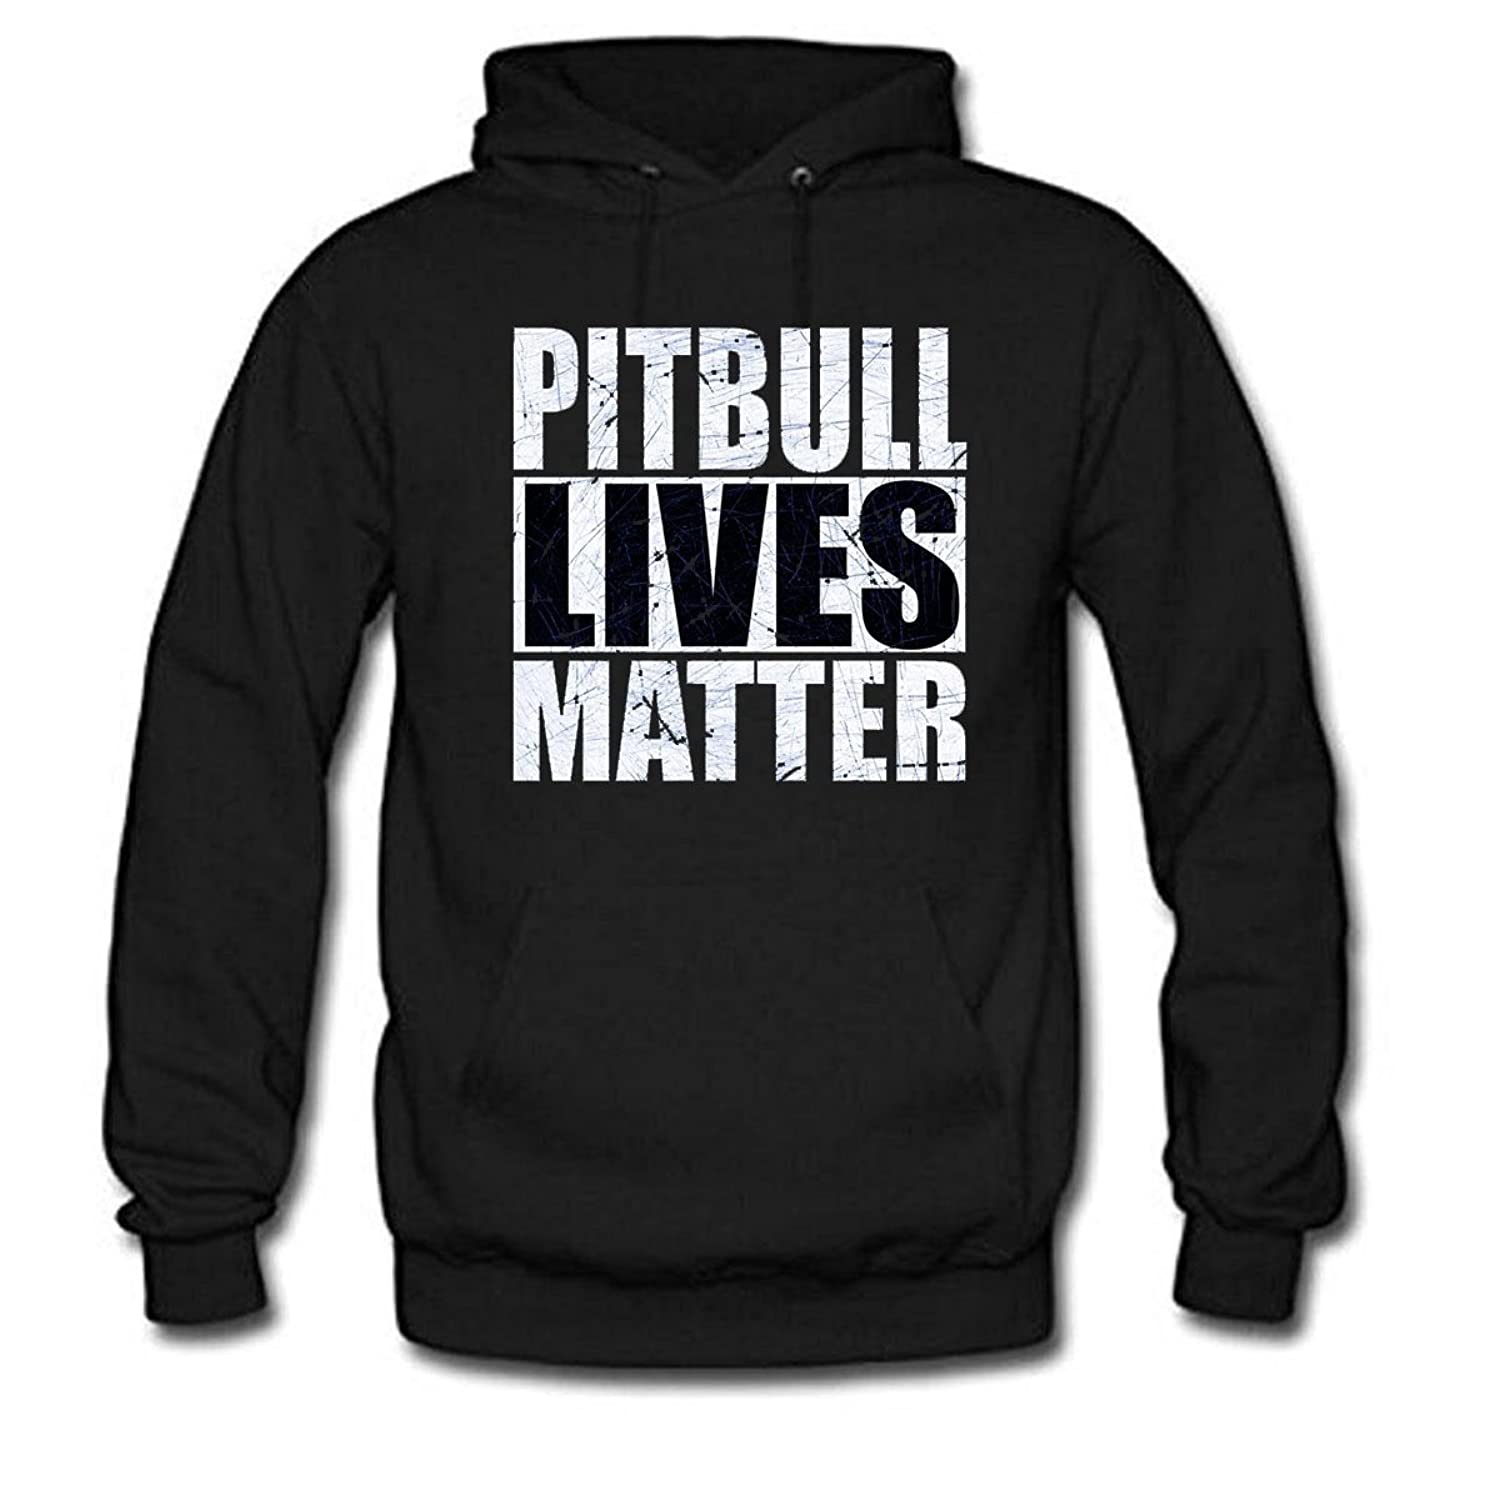 New PITBULL LIVES MATTER Men's Long Sleeve Casual Hoodie free shipping